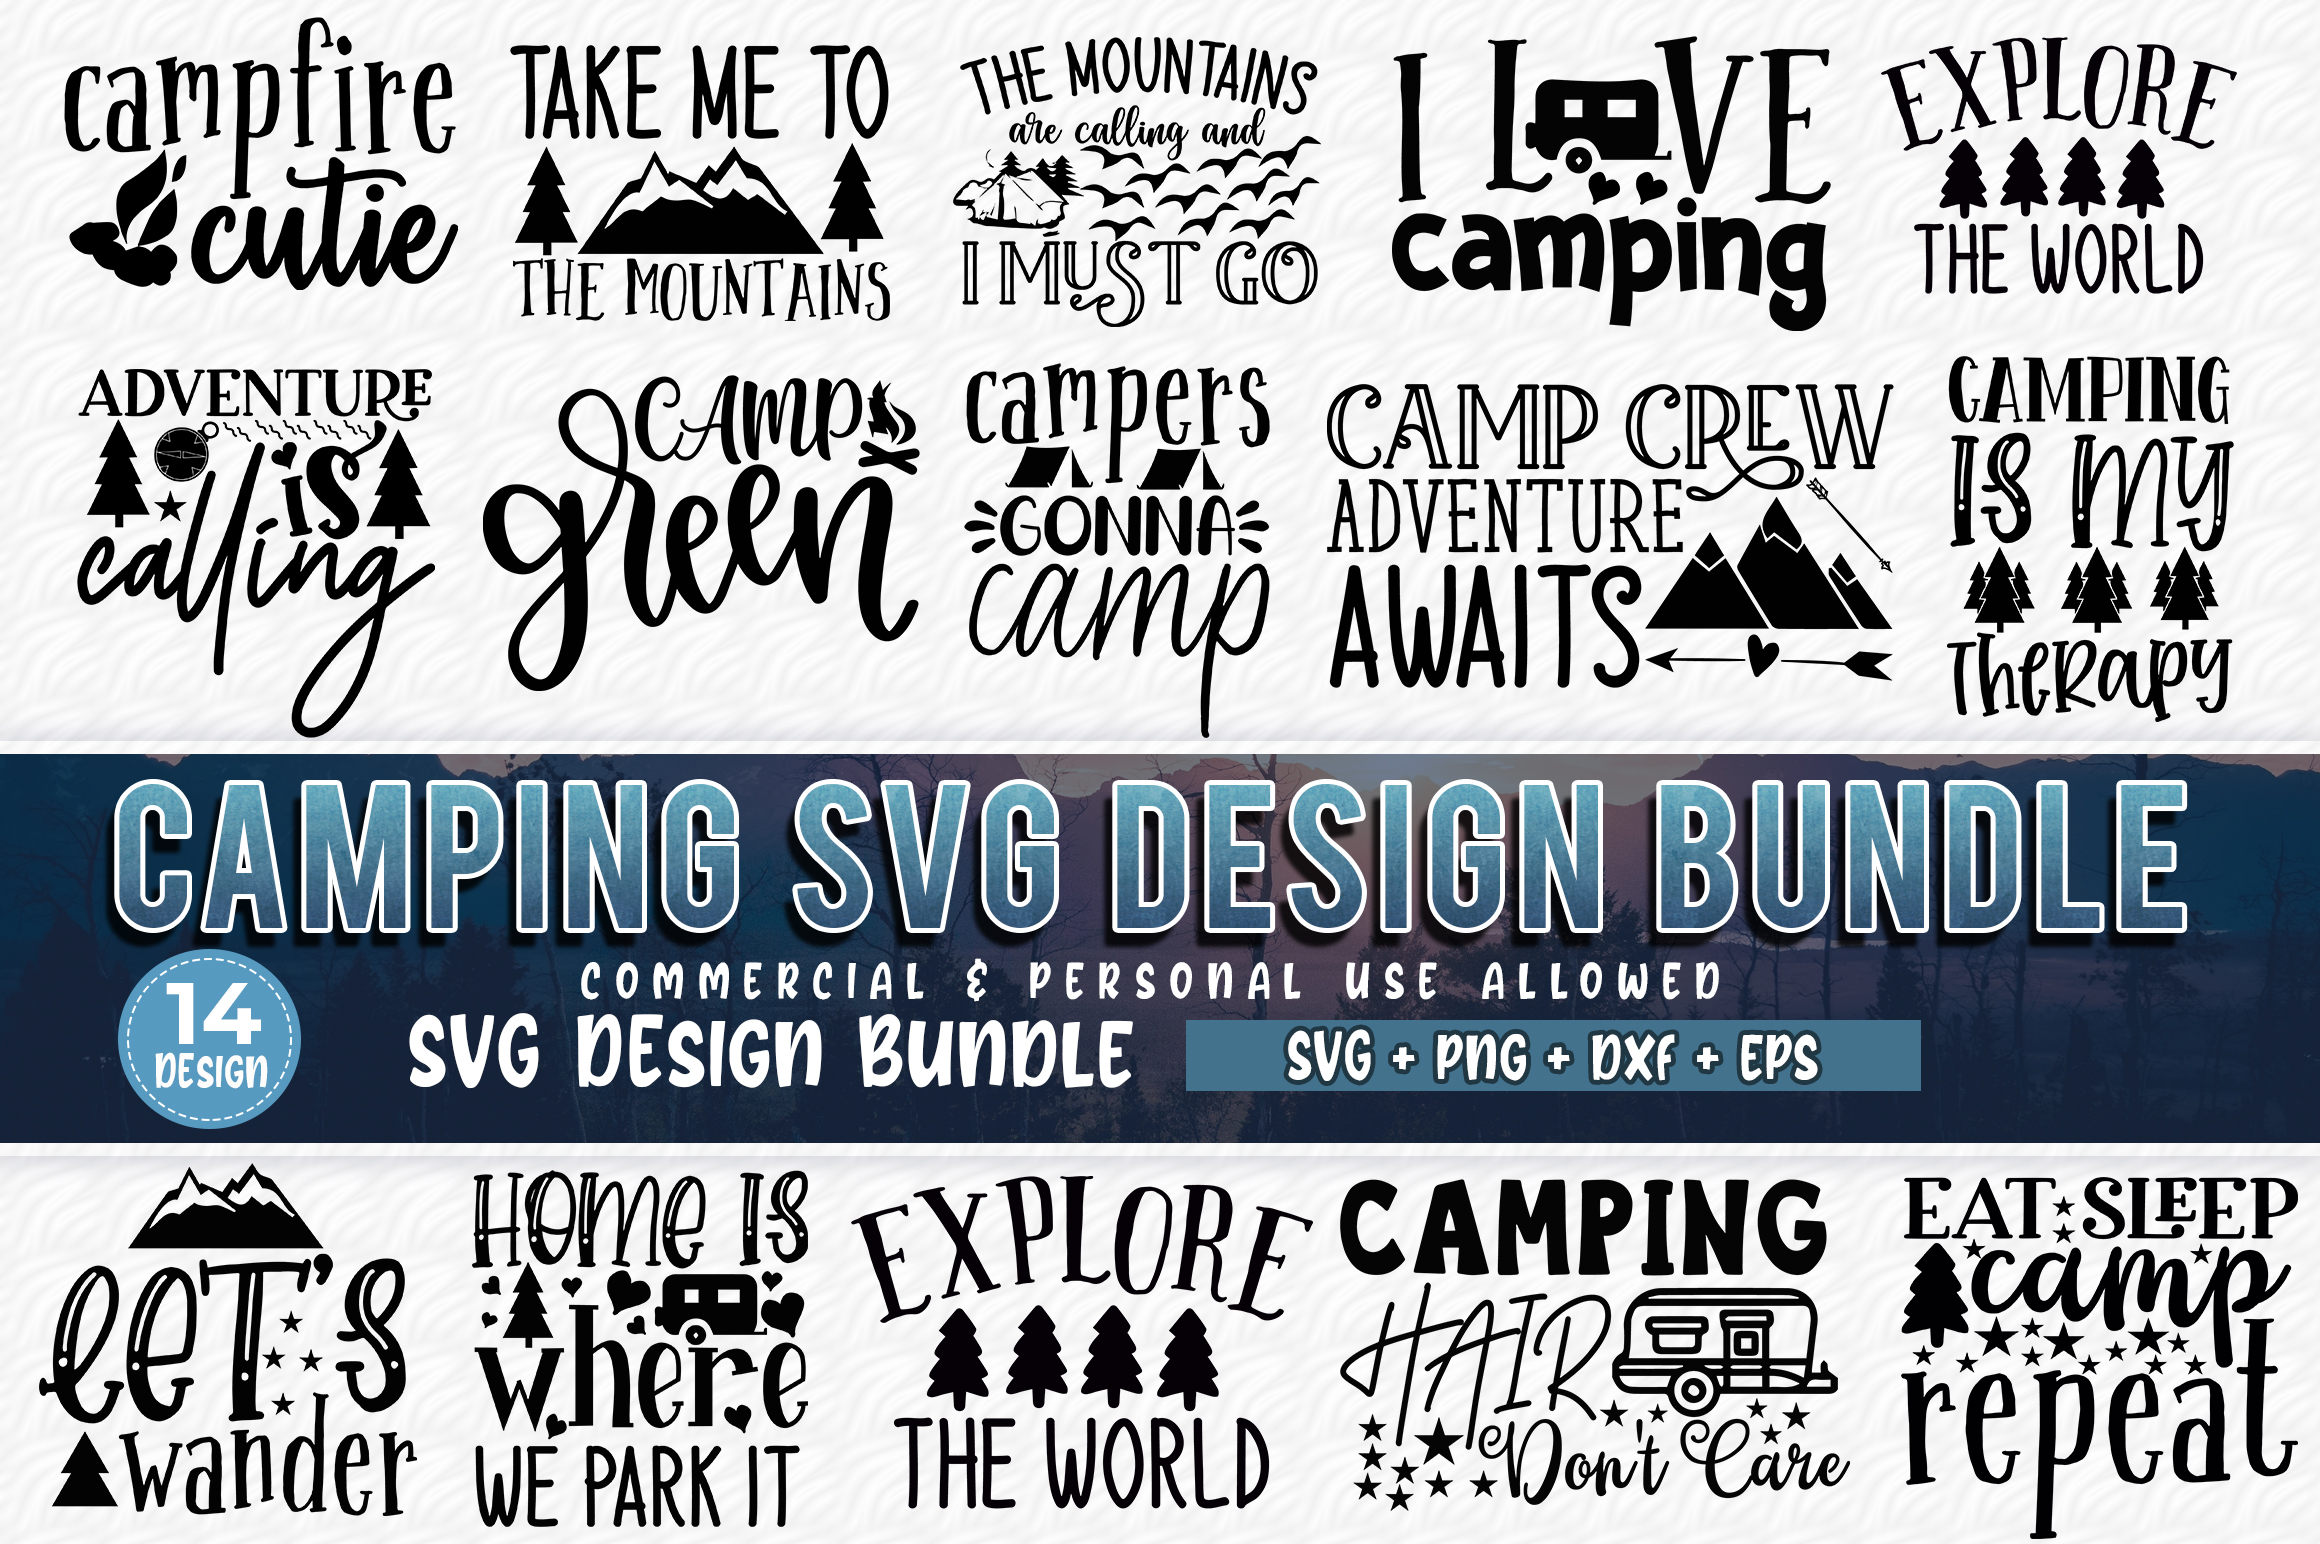 510 SVG DESIGN THE MIGHTY BUNDLE |32 DIFFERENT BUNDLES example image 13